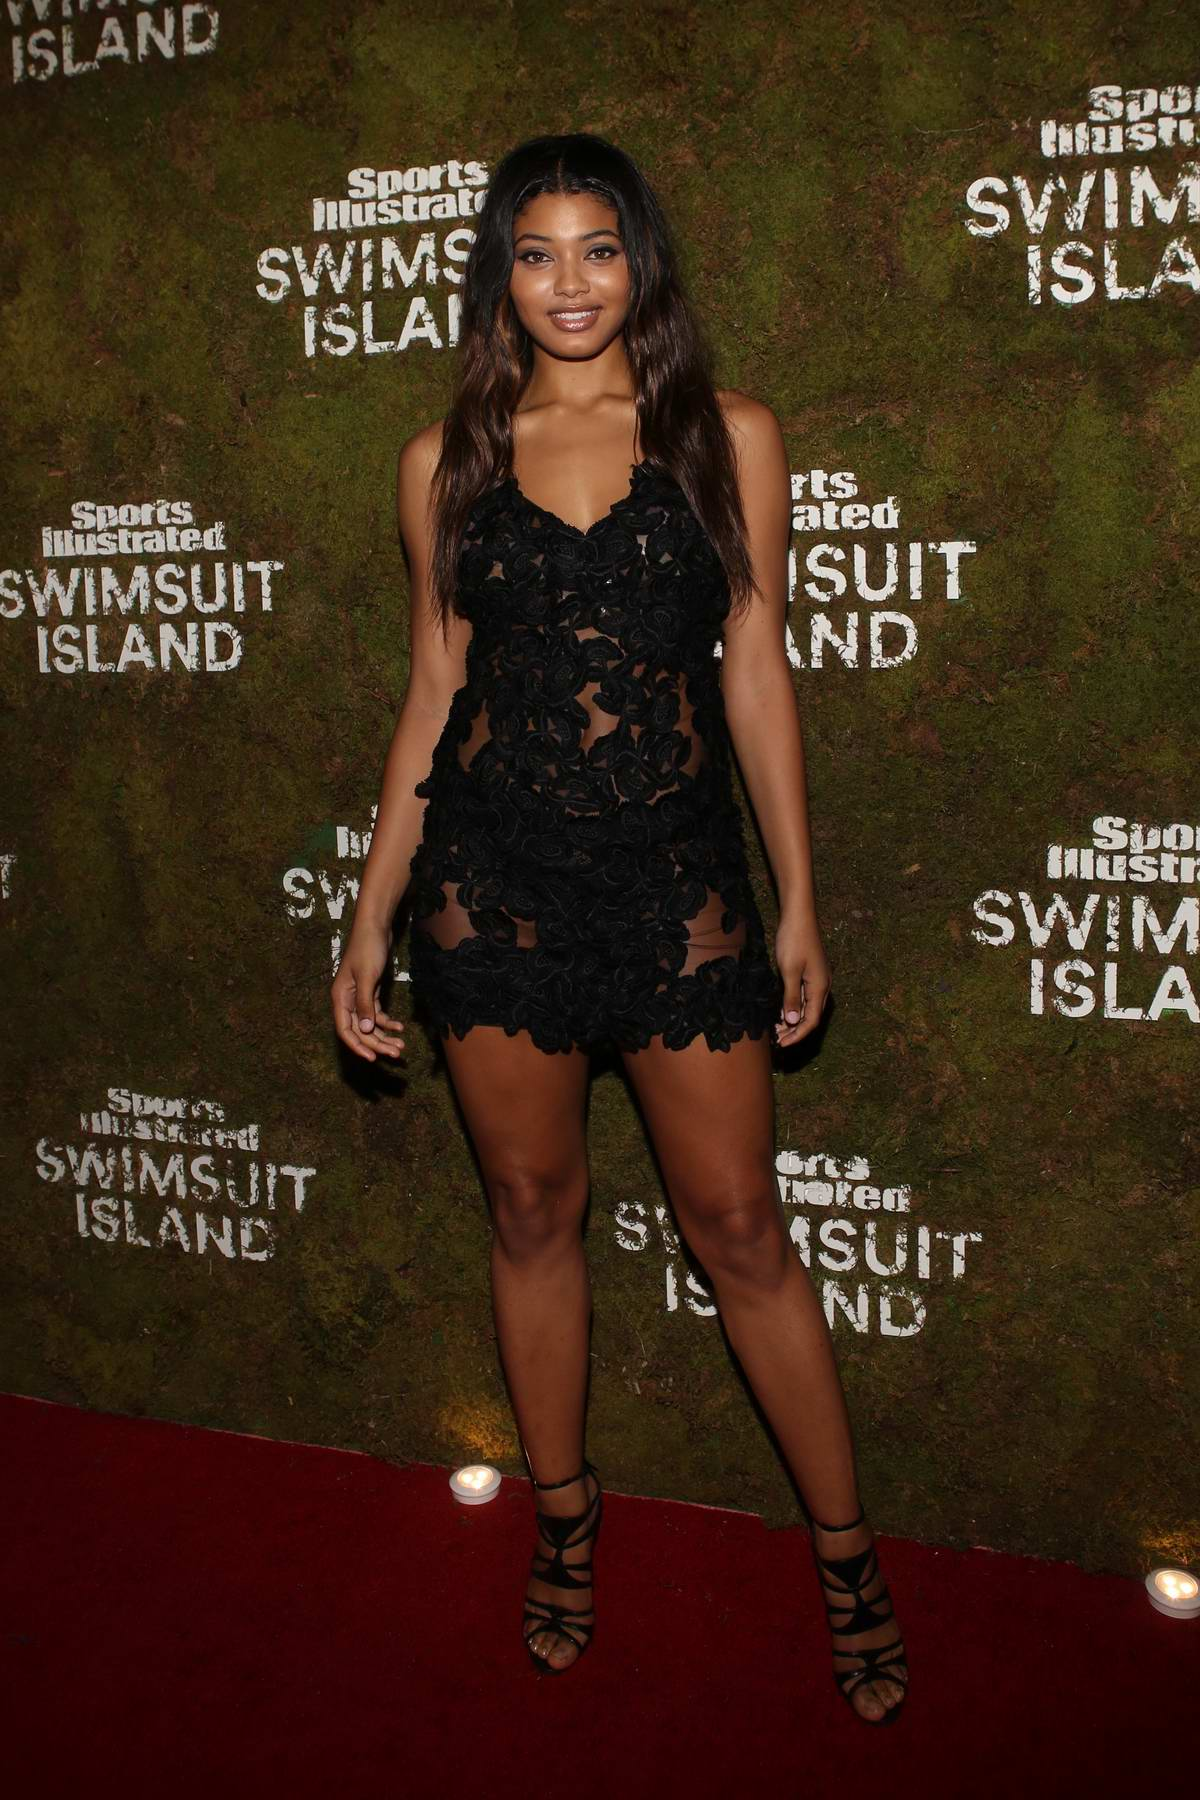 Danielle Herrington at Sports Illustrated Swimsuit Island at the W Hotel in Miami, Florida